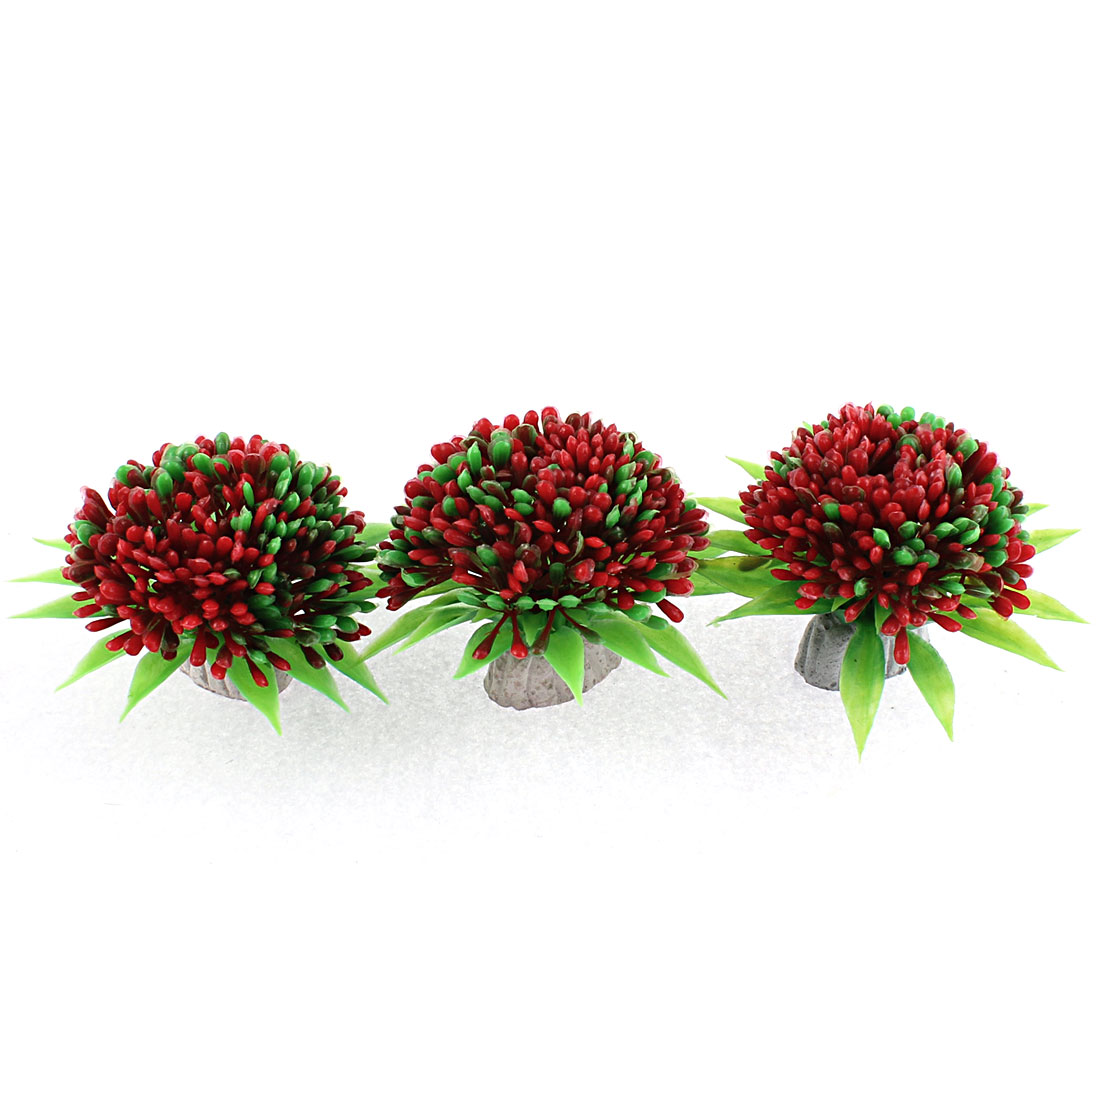 Artificial Plastic Water Plant Grass Red Green 8.5cm Dia 3 Pcs for Aquarium